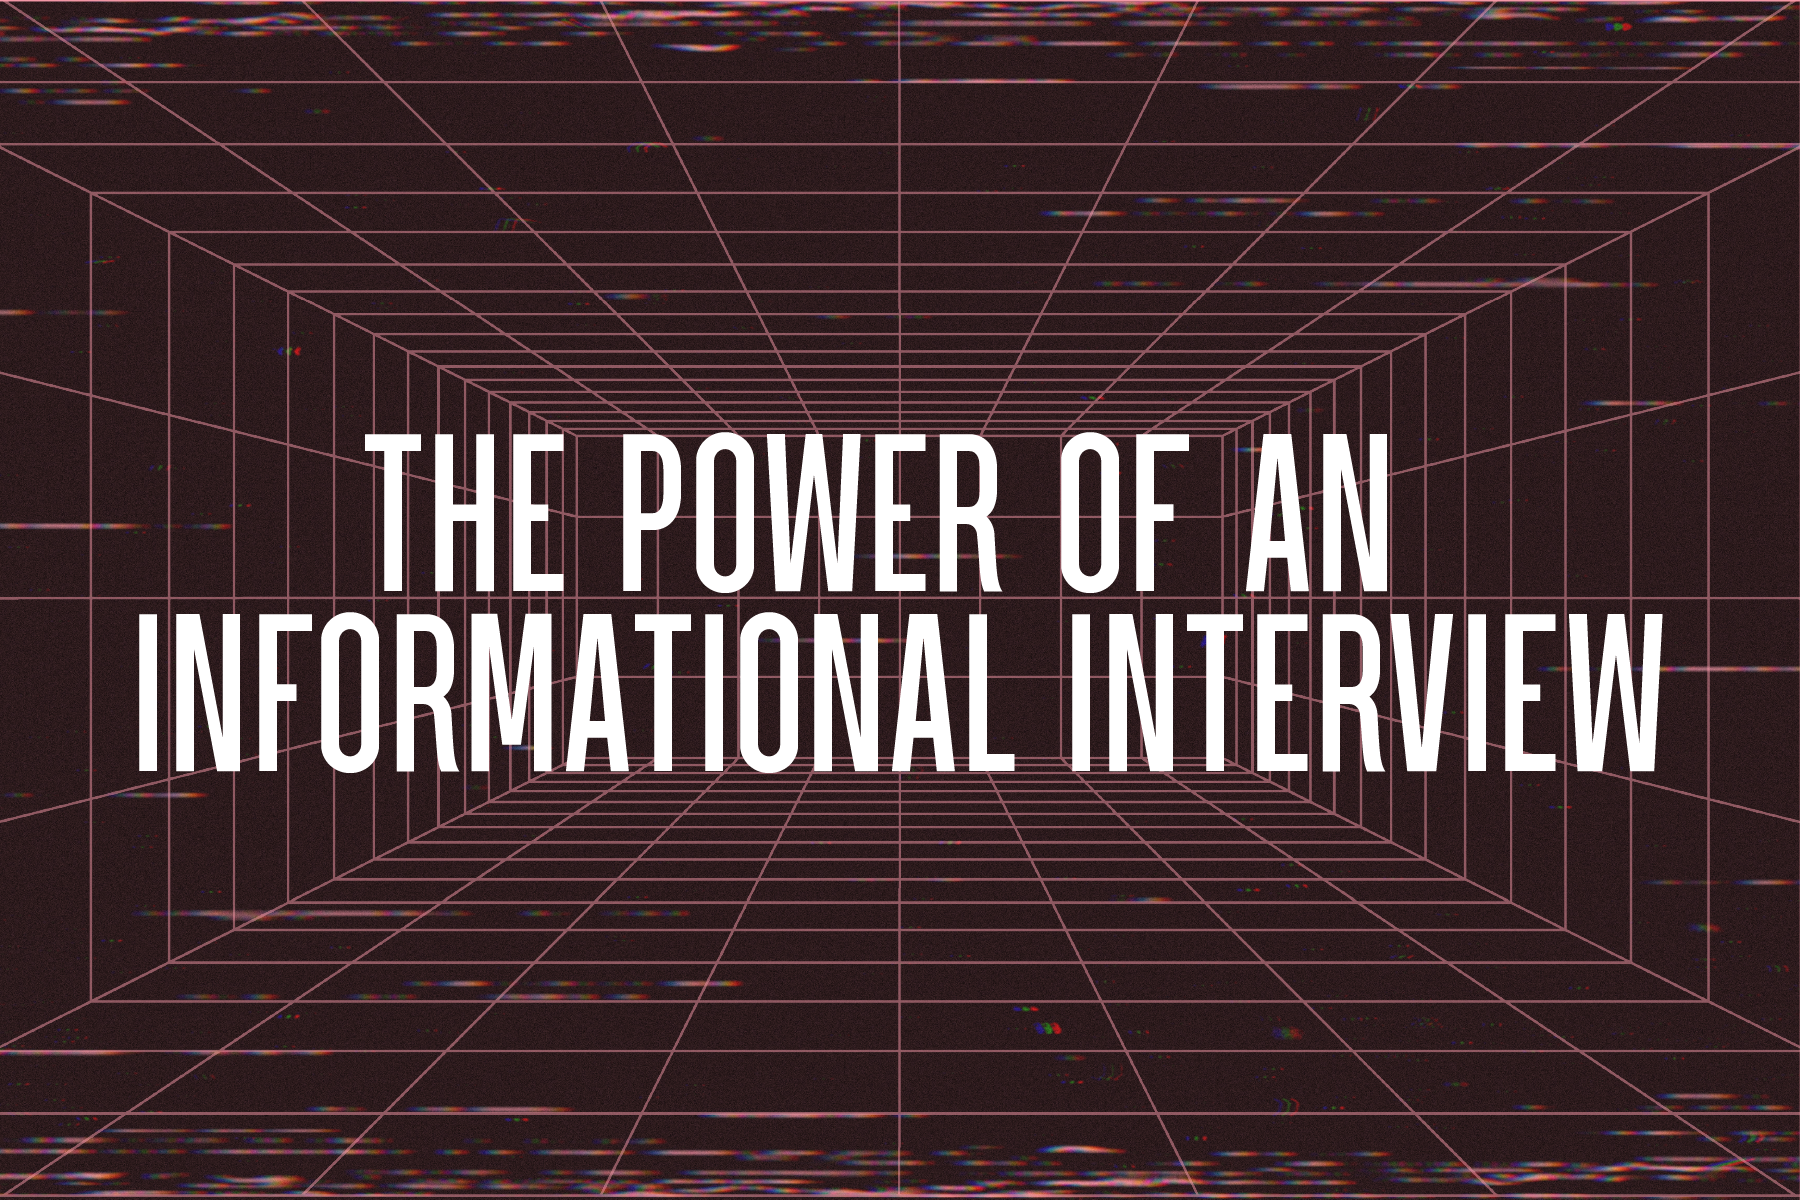 The Power of an Informational Interview